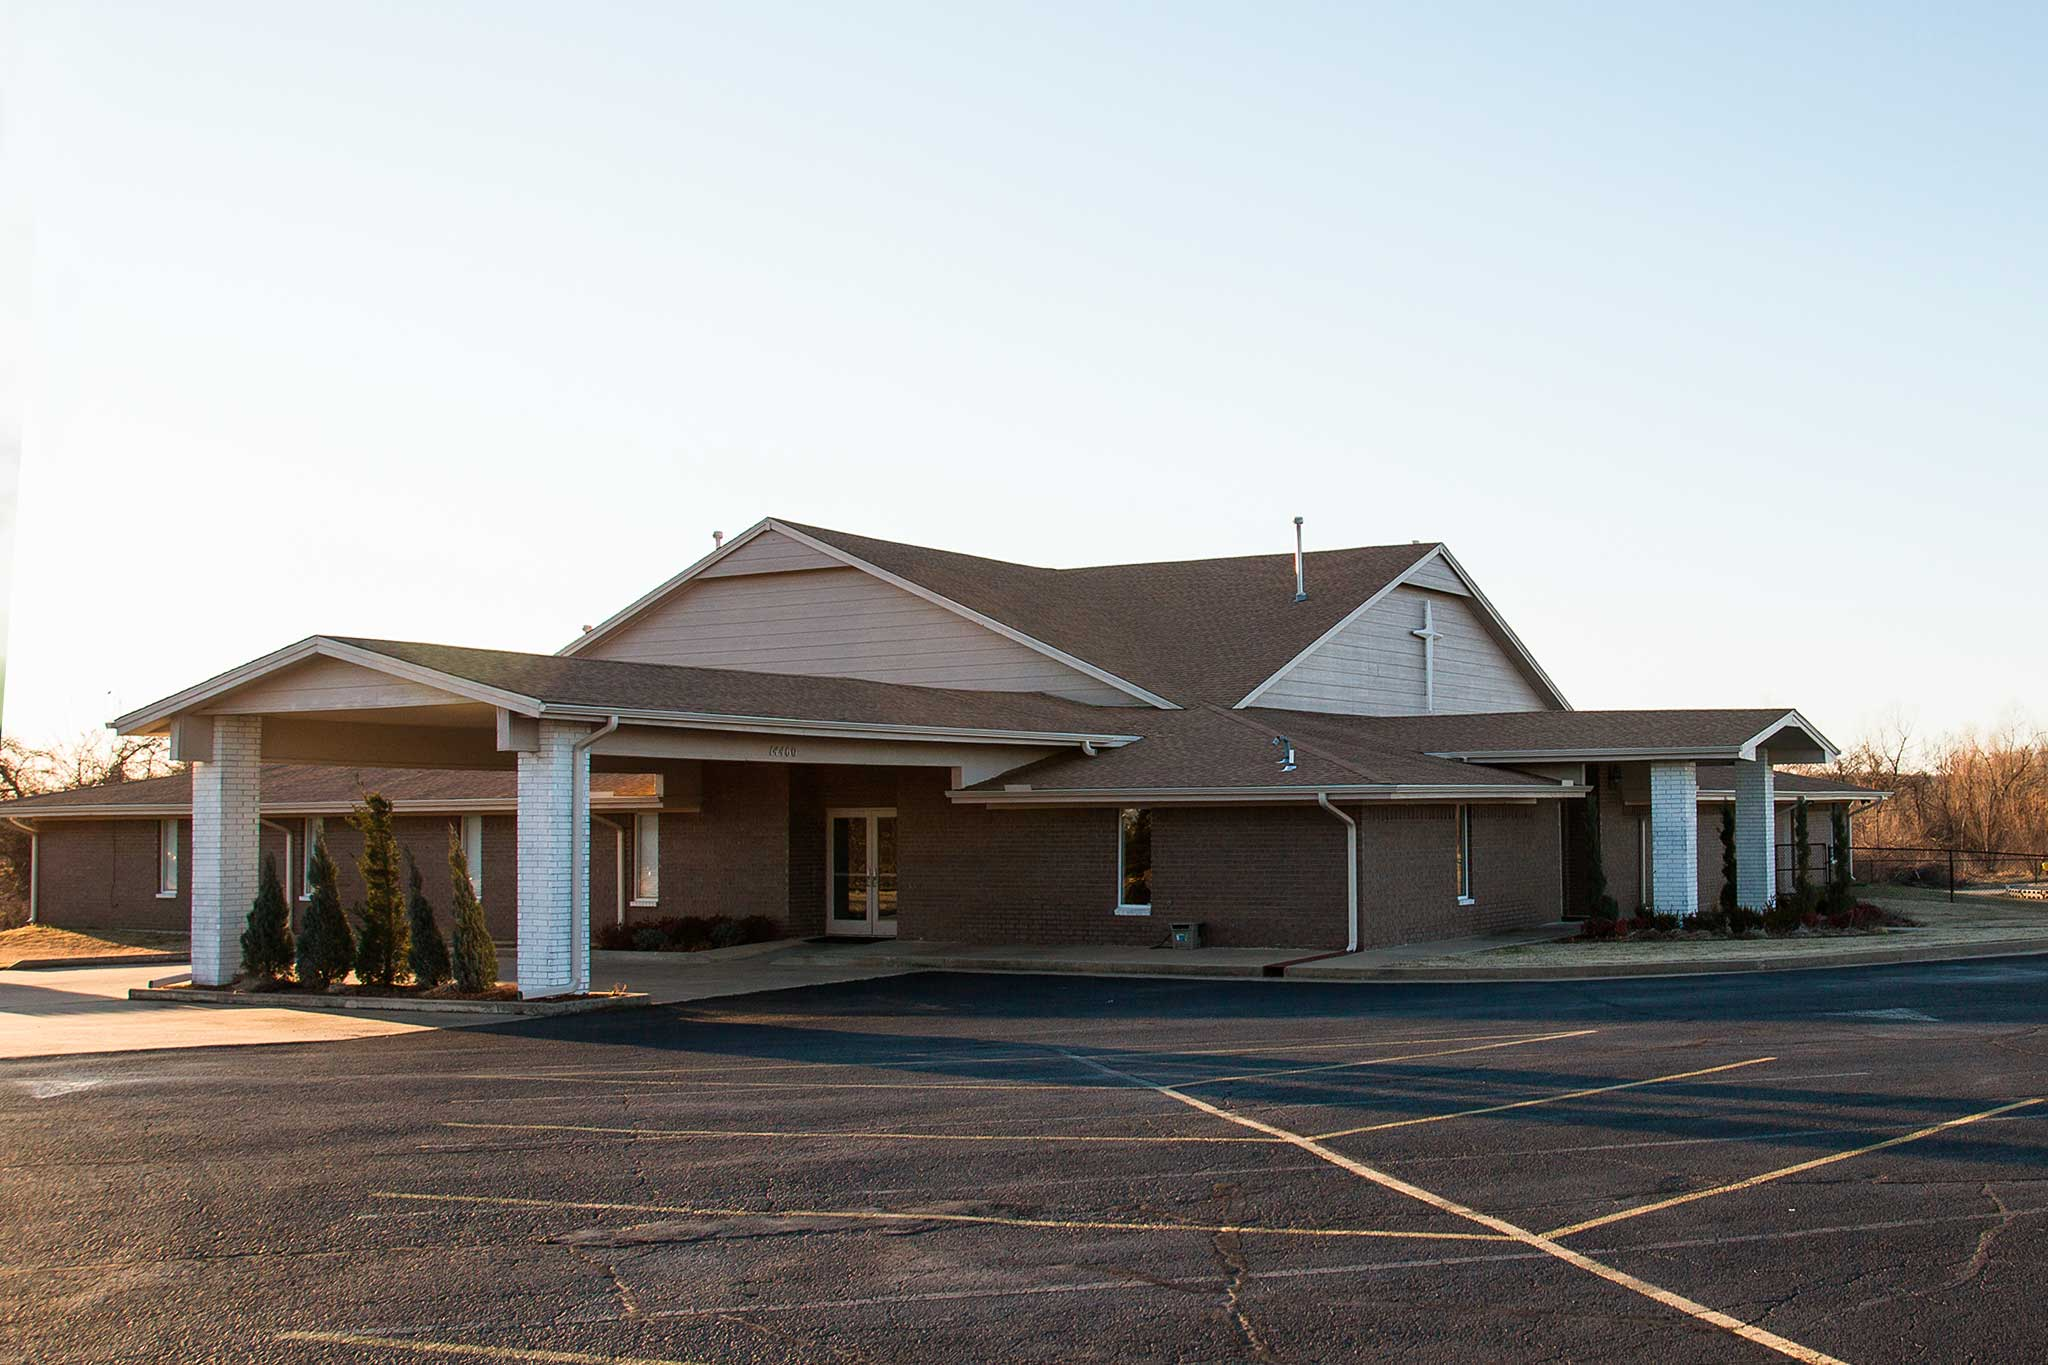 Woodlake-Church-Location-Glenpool-Oklahoma.jpg